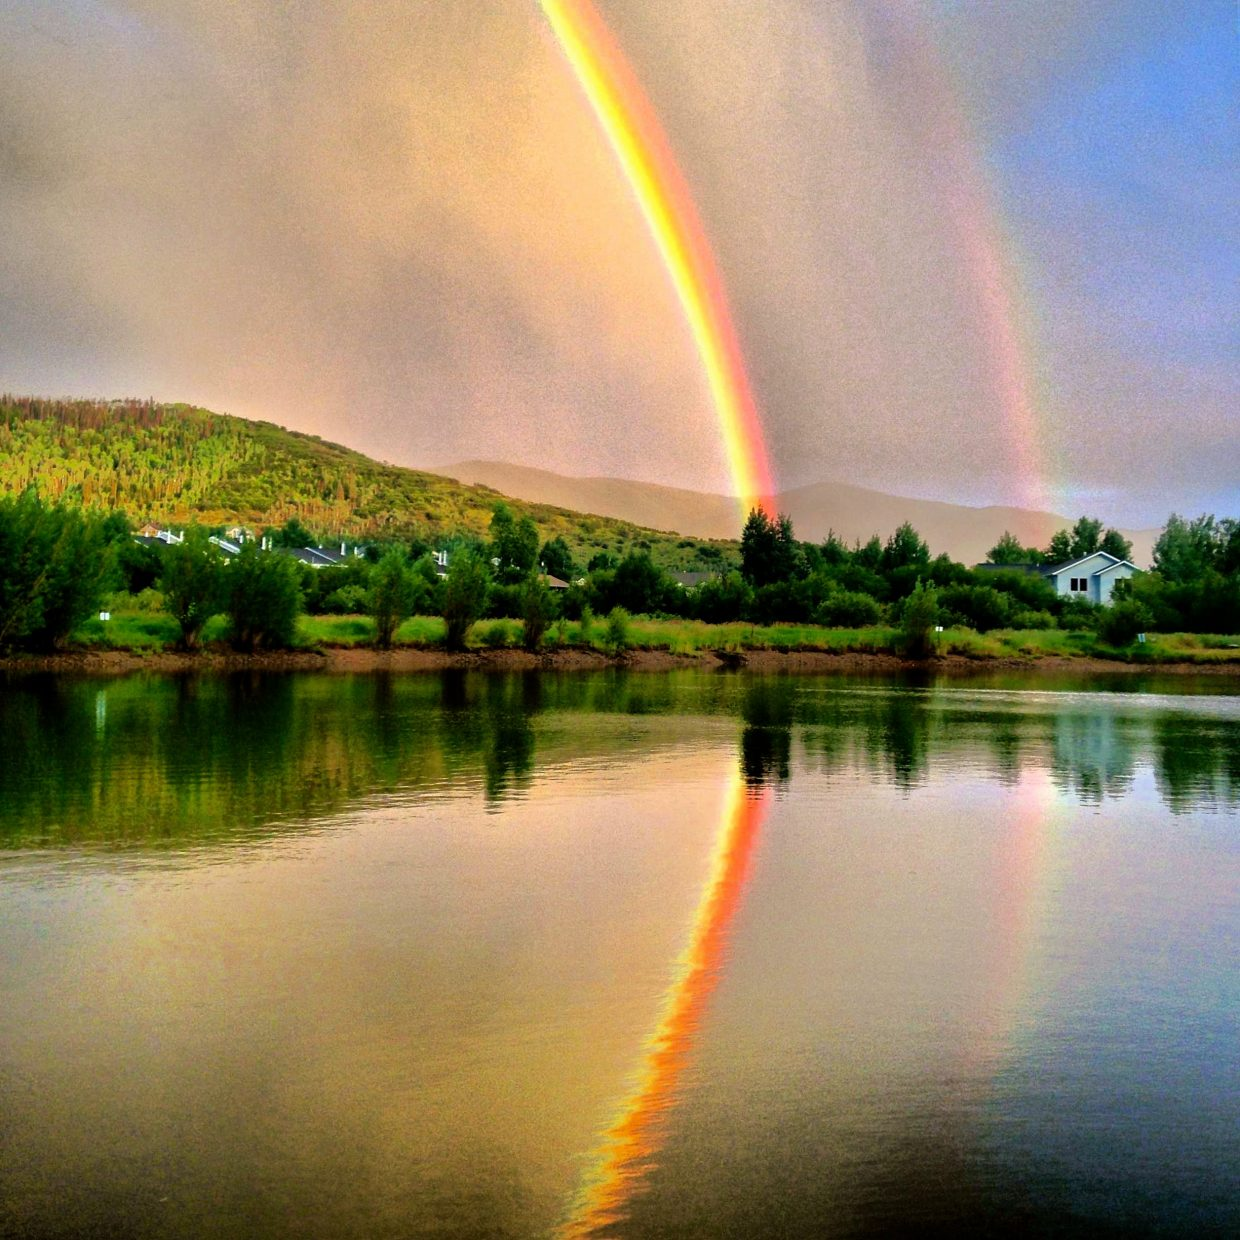 Rainbow reflection. Submitted by: Ryan Lohan